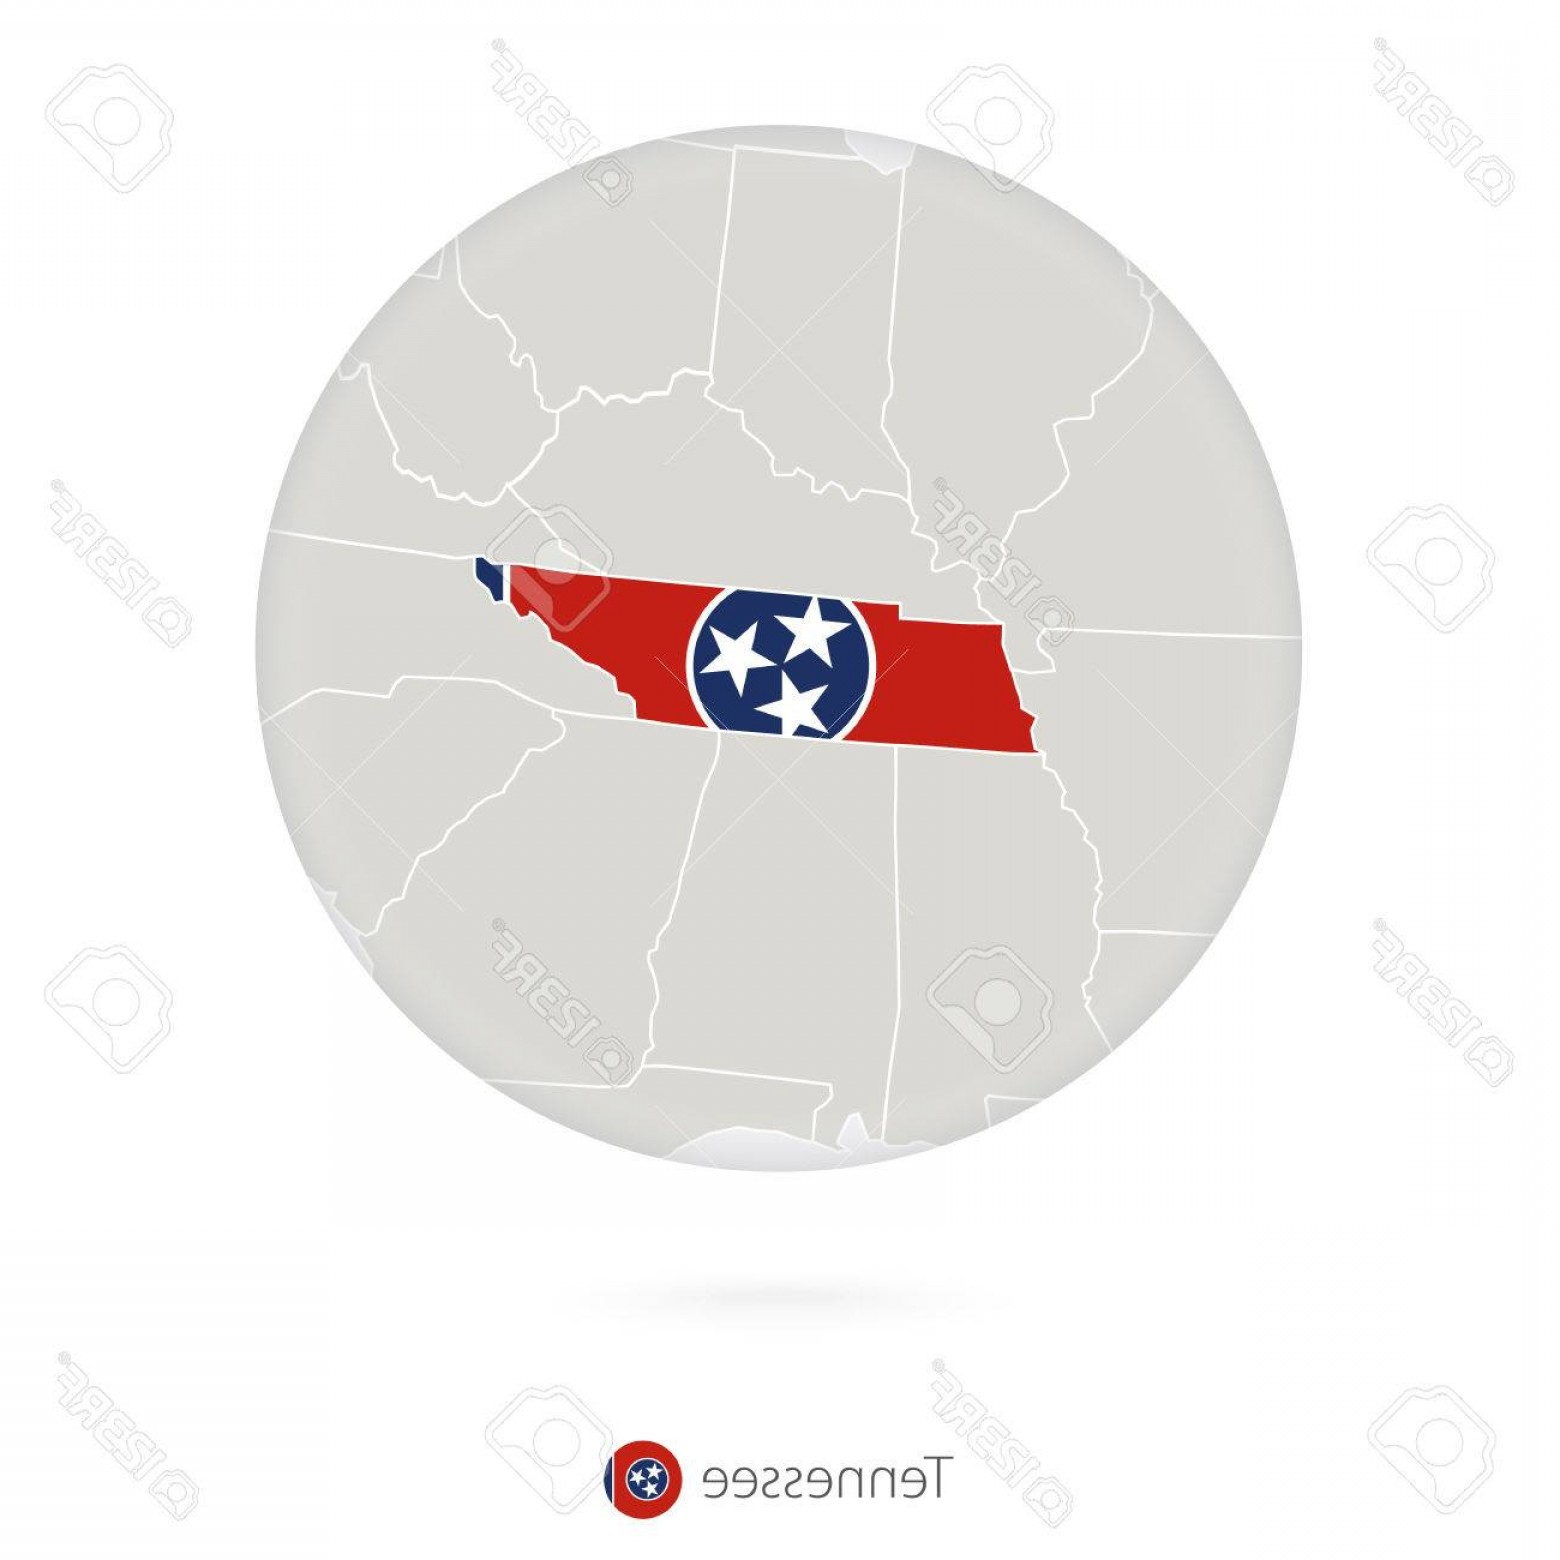 Tennessee Flag Vector: Photostock Vector Map Of Tennessee State And Flag In A Circle Tennessee Us State Map Contour With Flag Vector Illustra